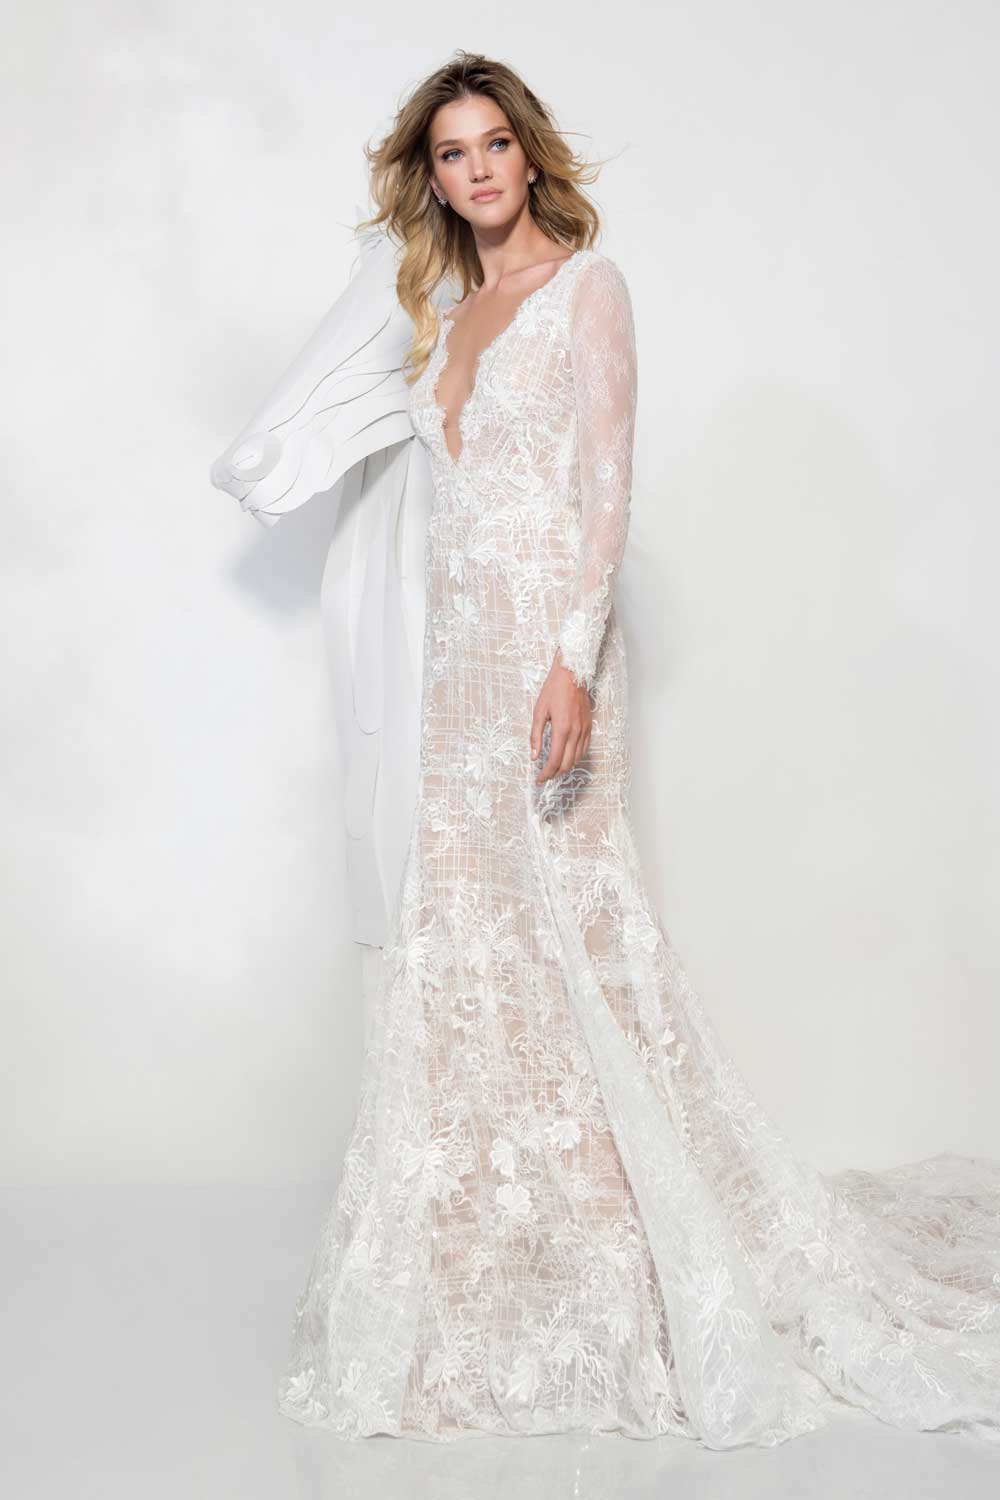 70's inspired bridal gowns by Yani Persy